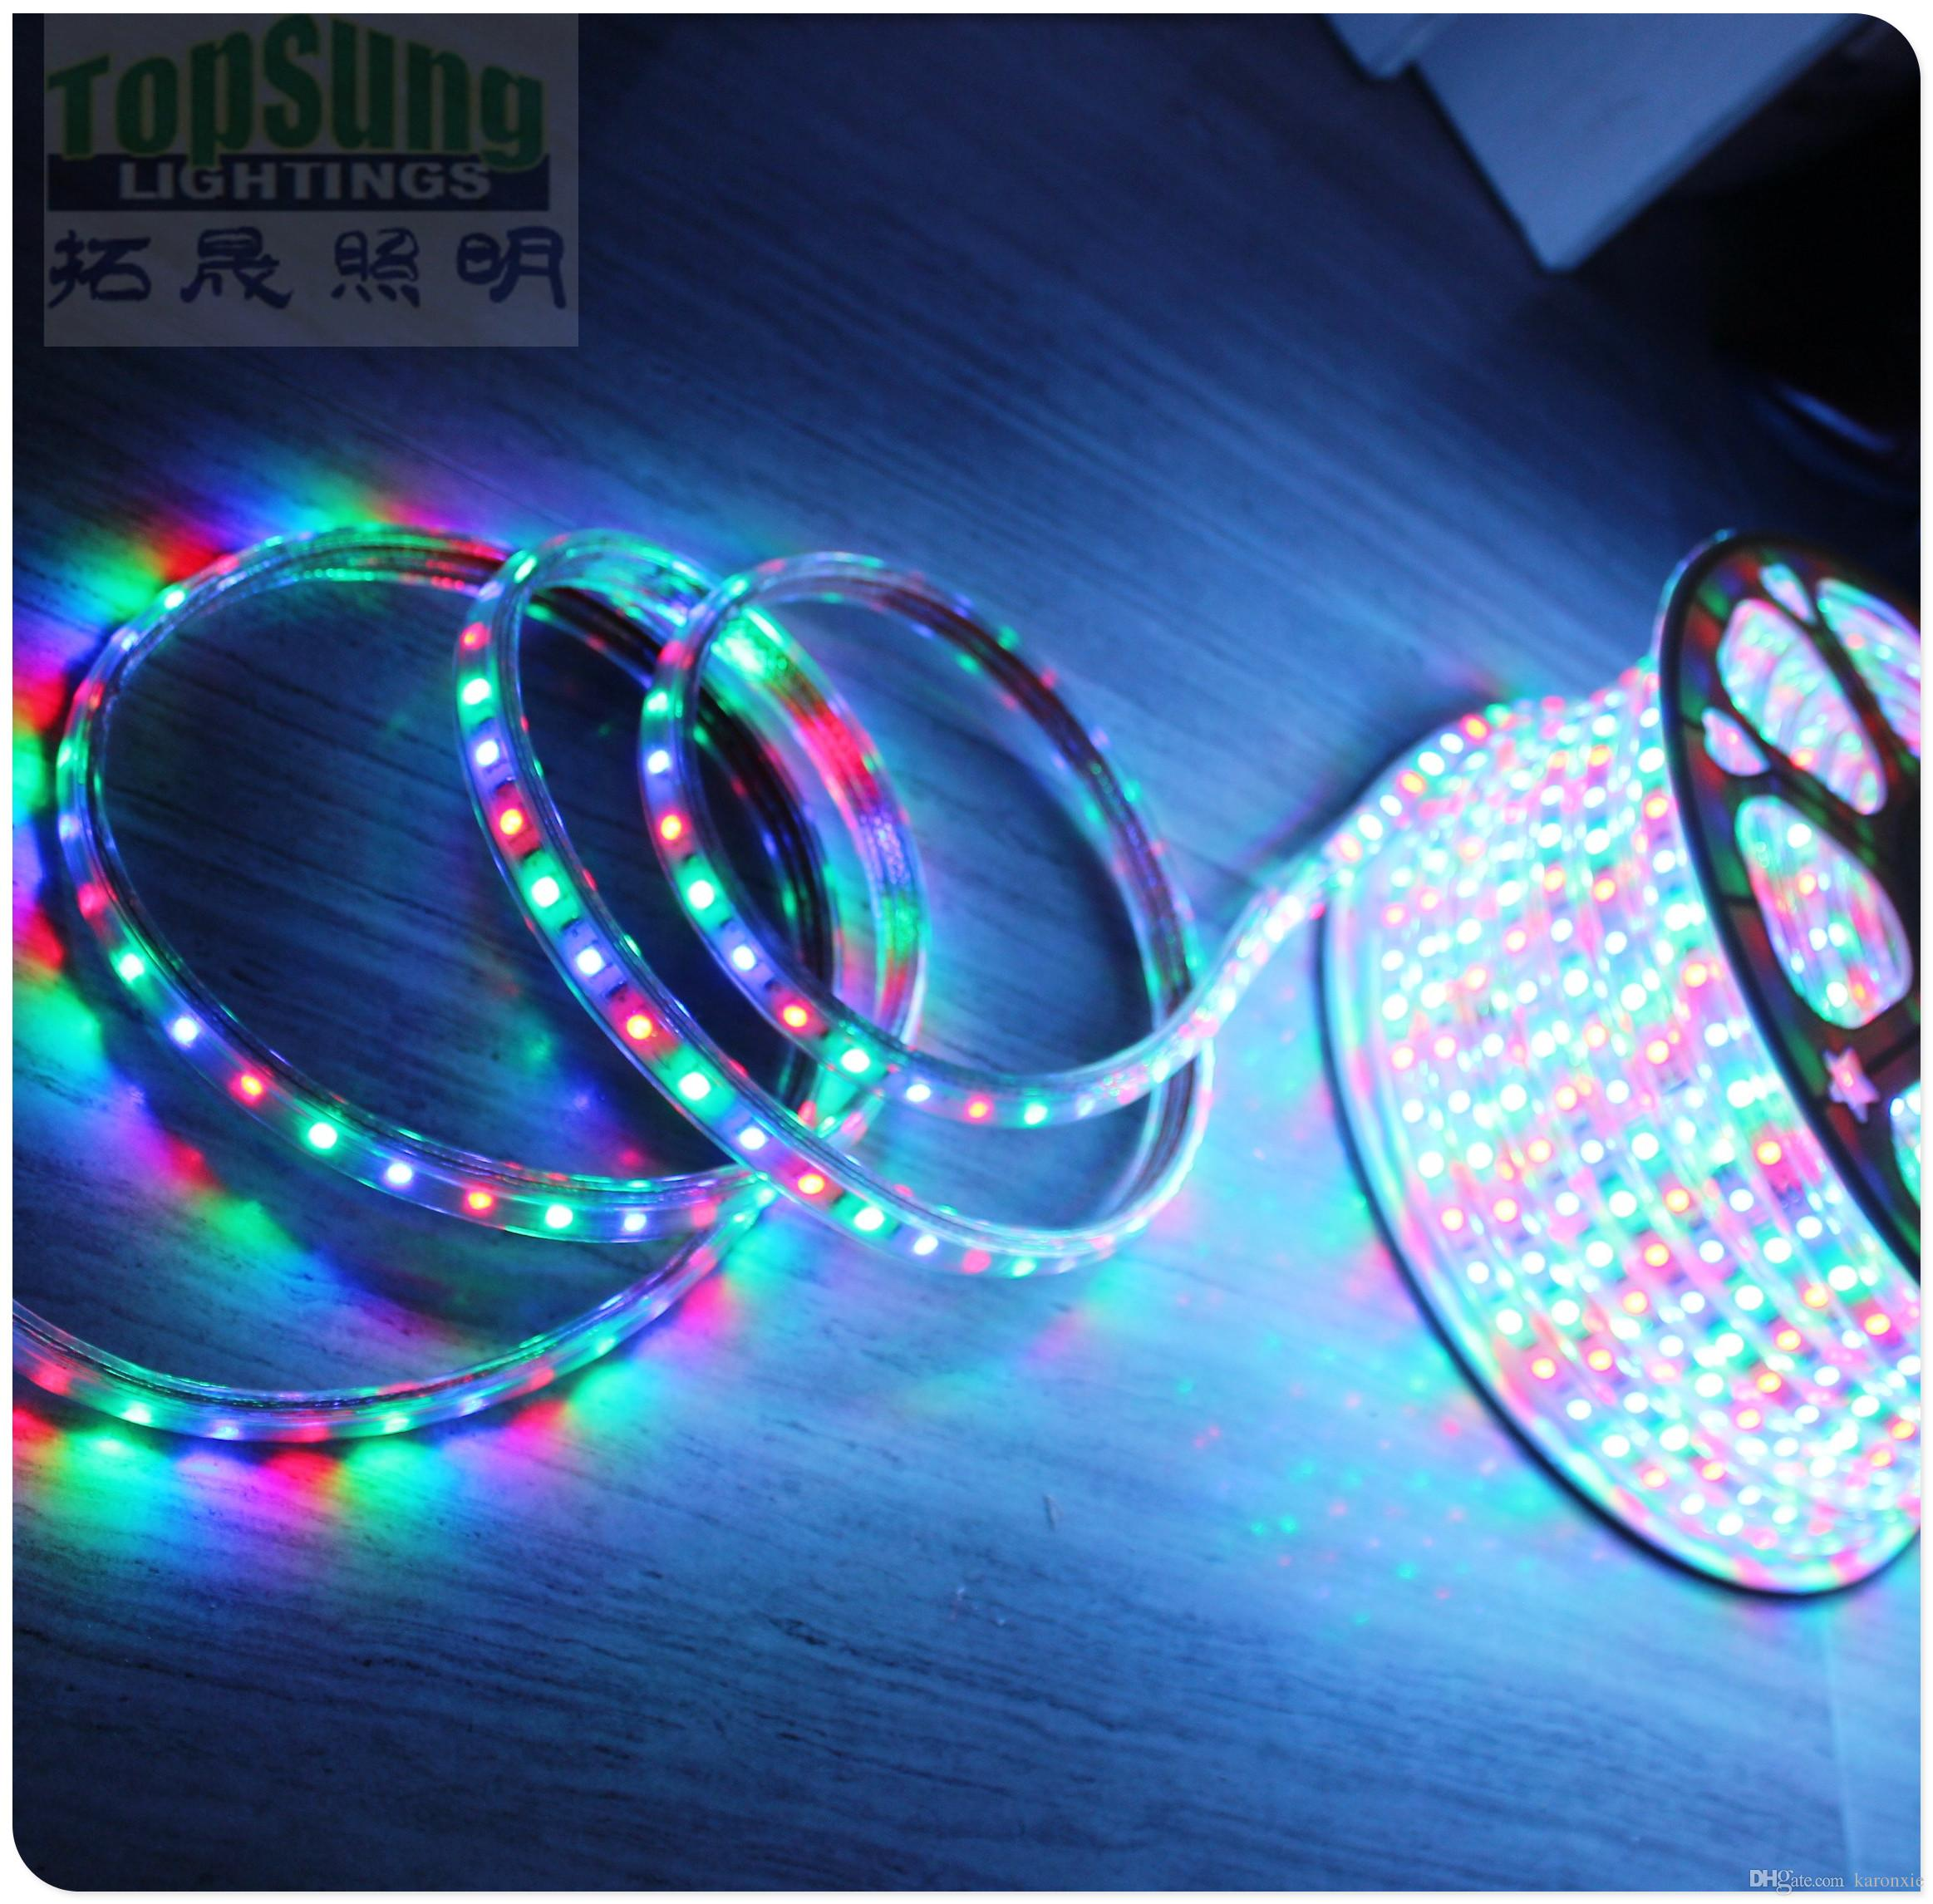 50m spool 110v 220v ac led strip flexible 5050 smd rgb chasing rope 50m spool 110v 220v ac led strip flexible 5050 smd rgb chasing rope lights waterproof 60smdm with remote controller waterproof led strips led strip lights mozeypictures Image collections